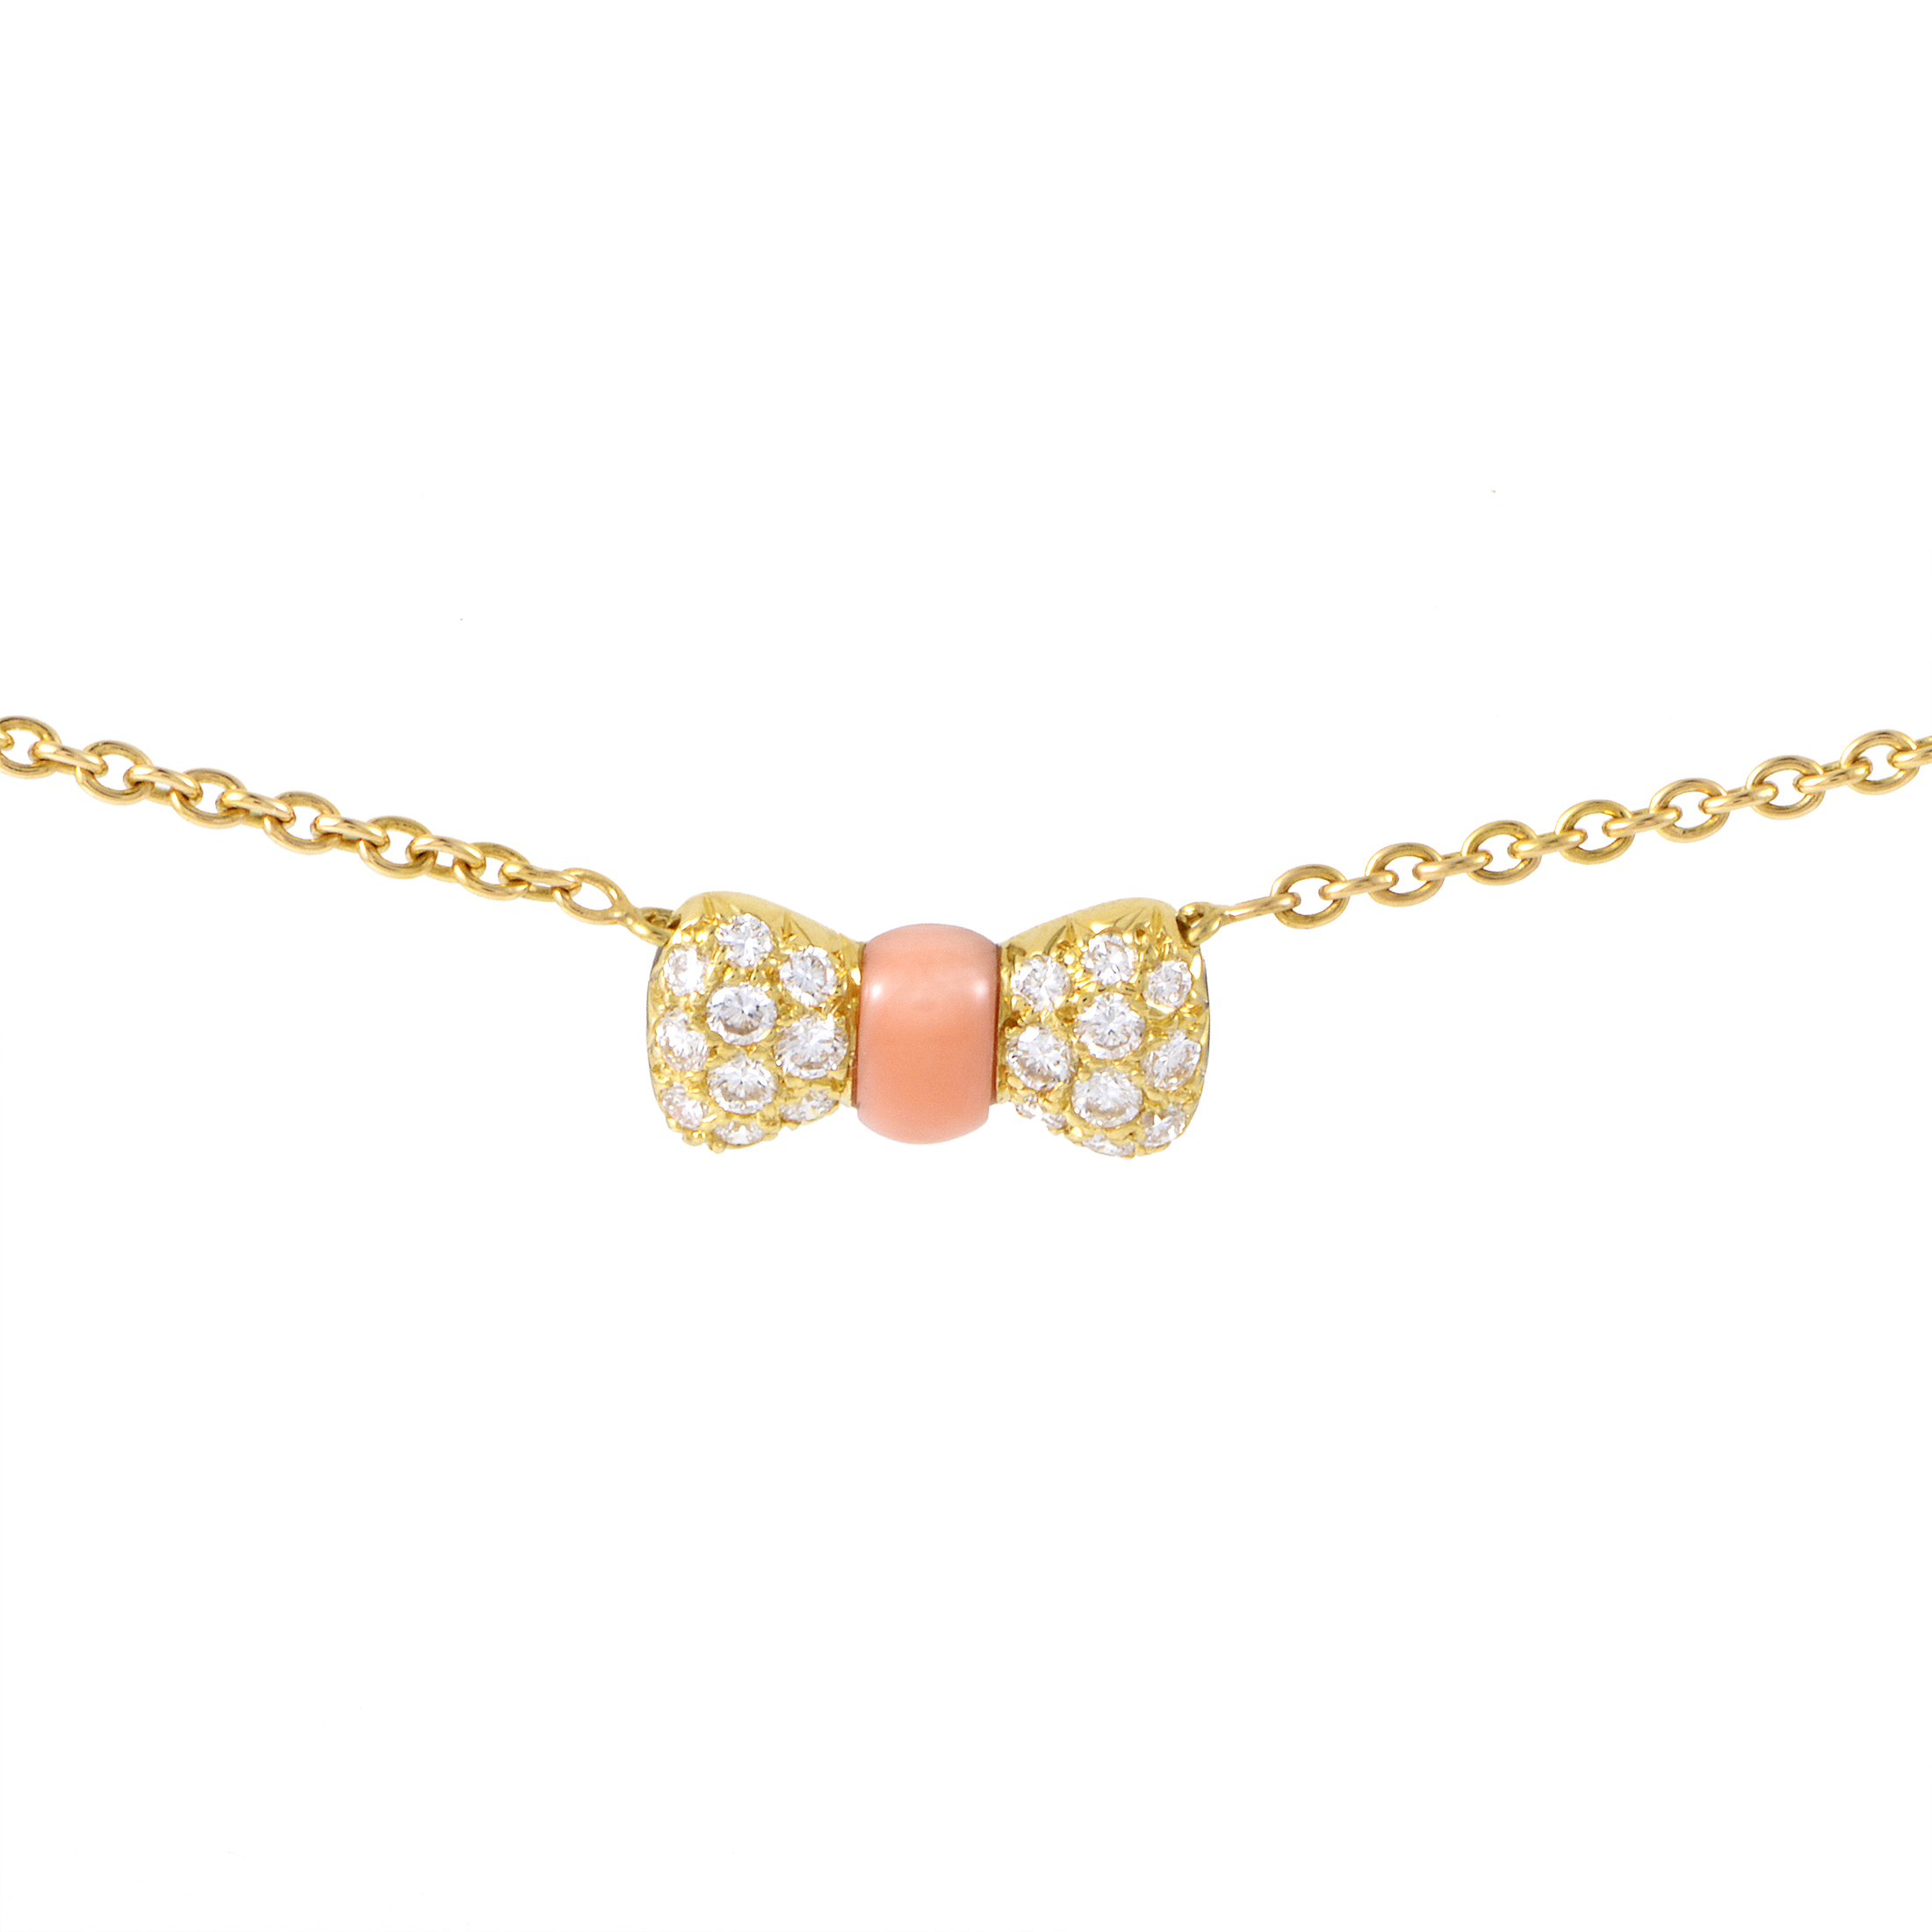 Van Cleef & Arpels 18K Yellow Gold Diamond & Coral Bow Pendant Necklace